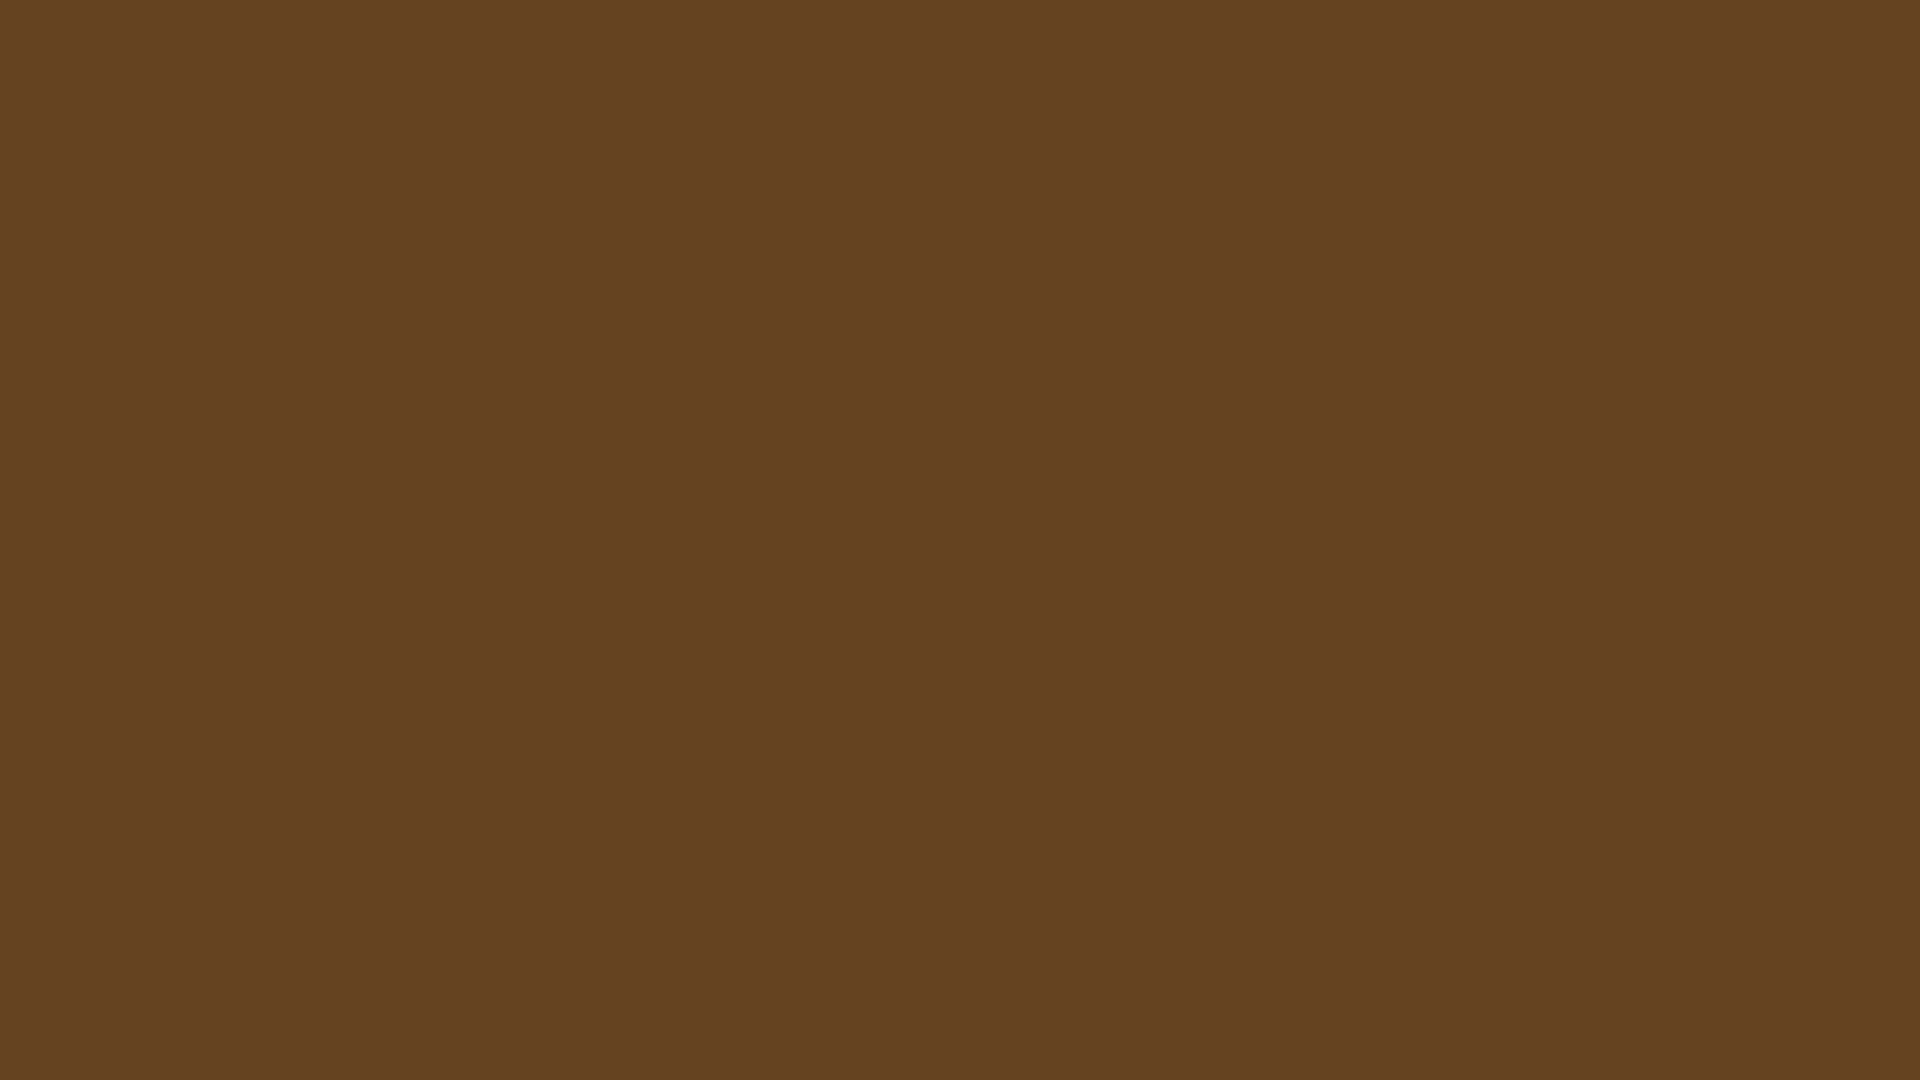 brownbackground124578